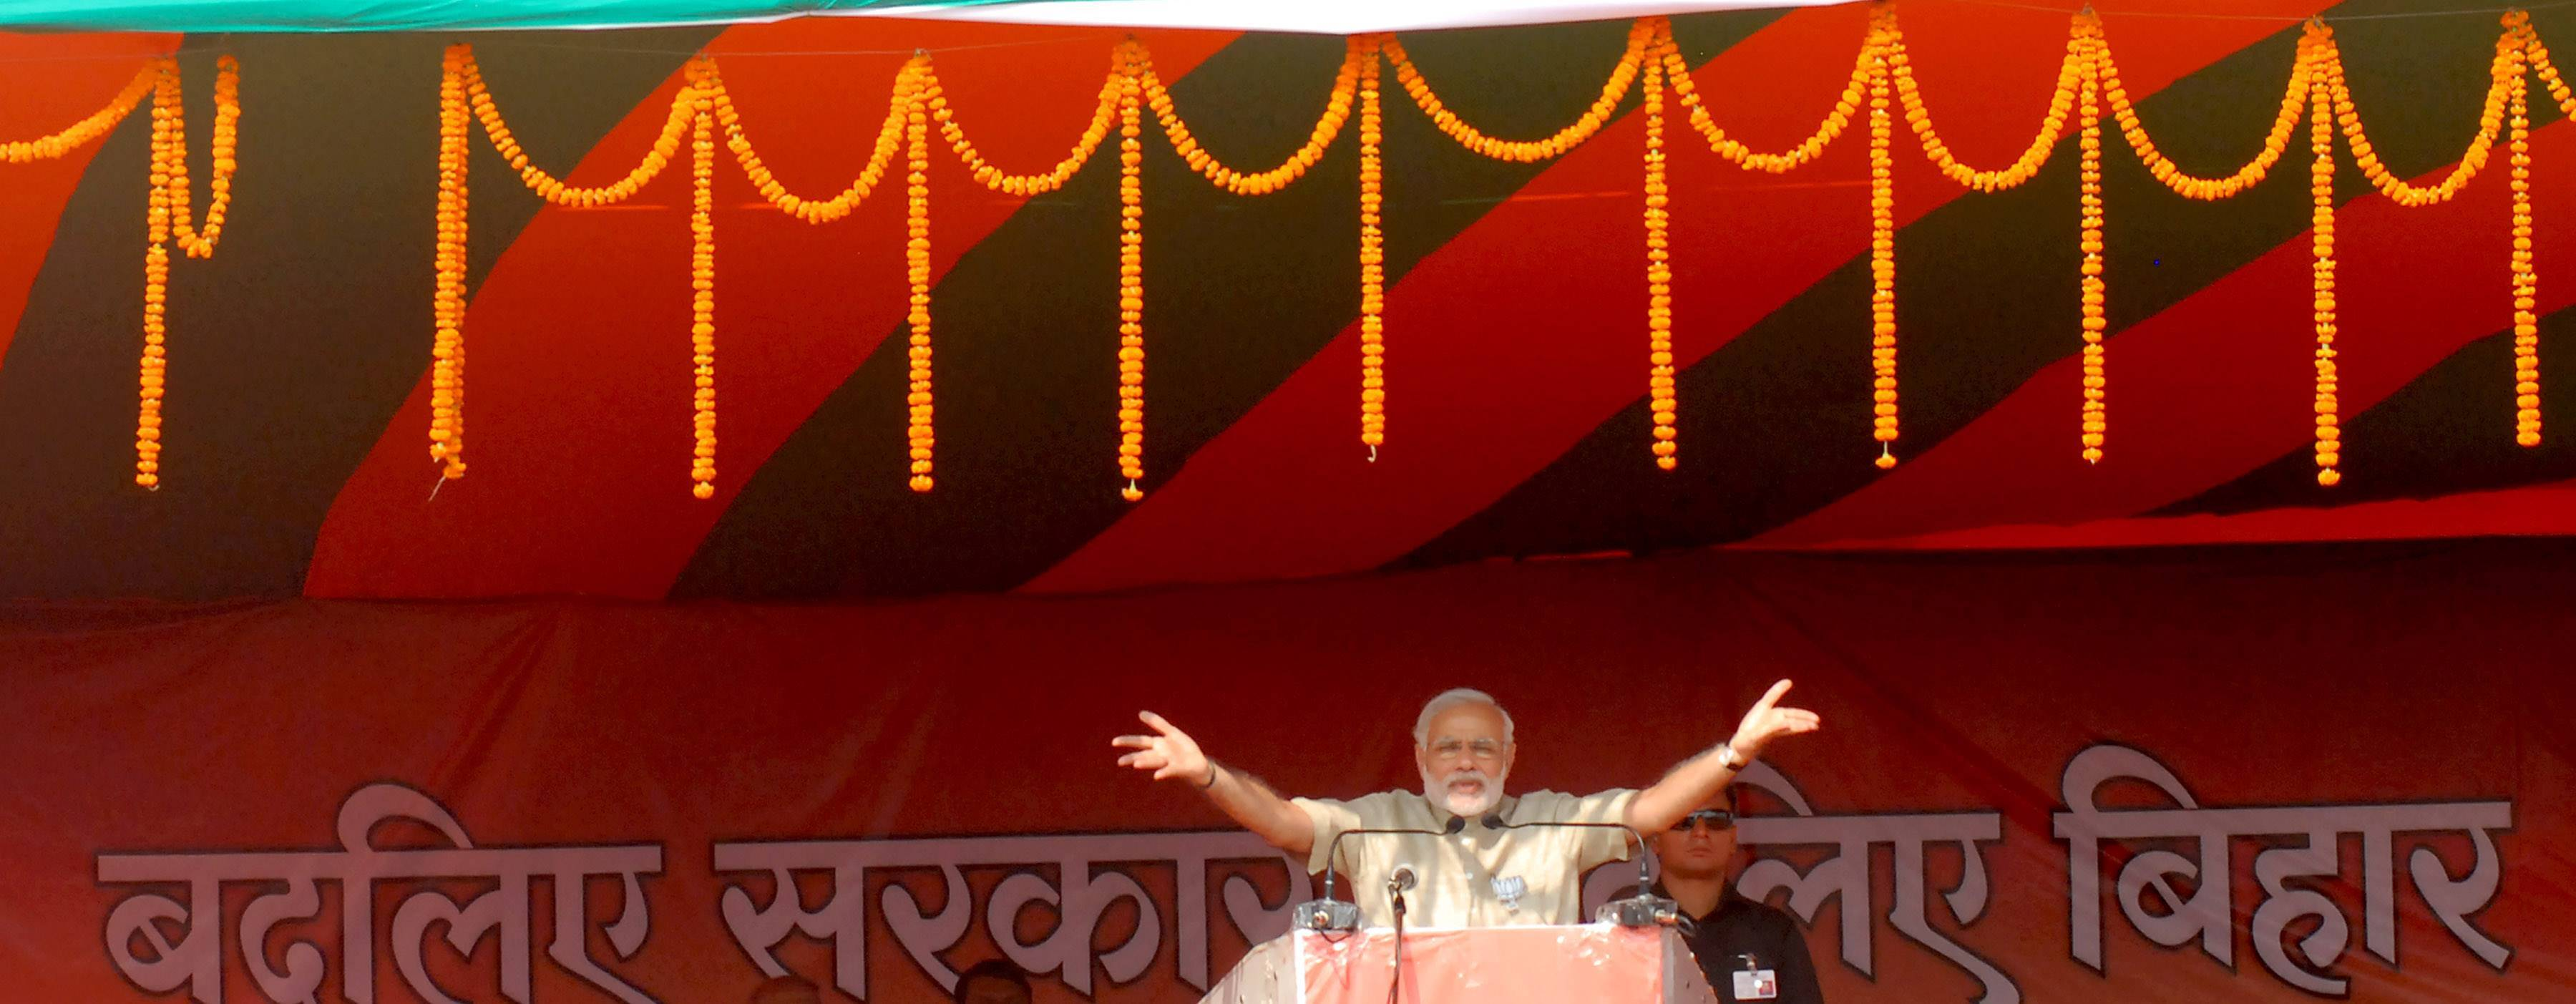 Prime Minister Narendra Modi addresses the crowd during election rally in hajipur on Sunday, Oct 25, 2015. Express photo by Prashant Ravi